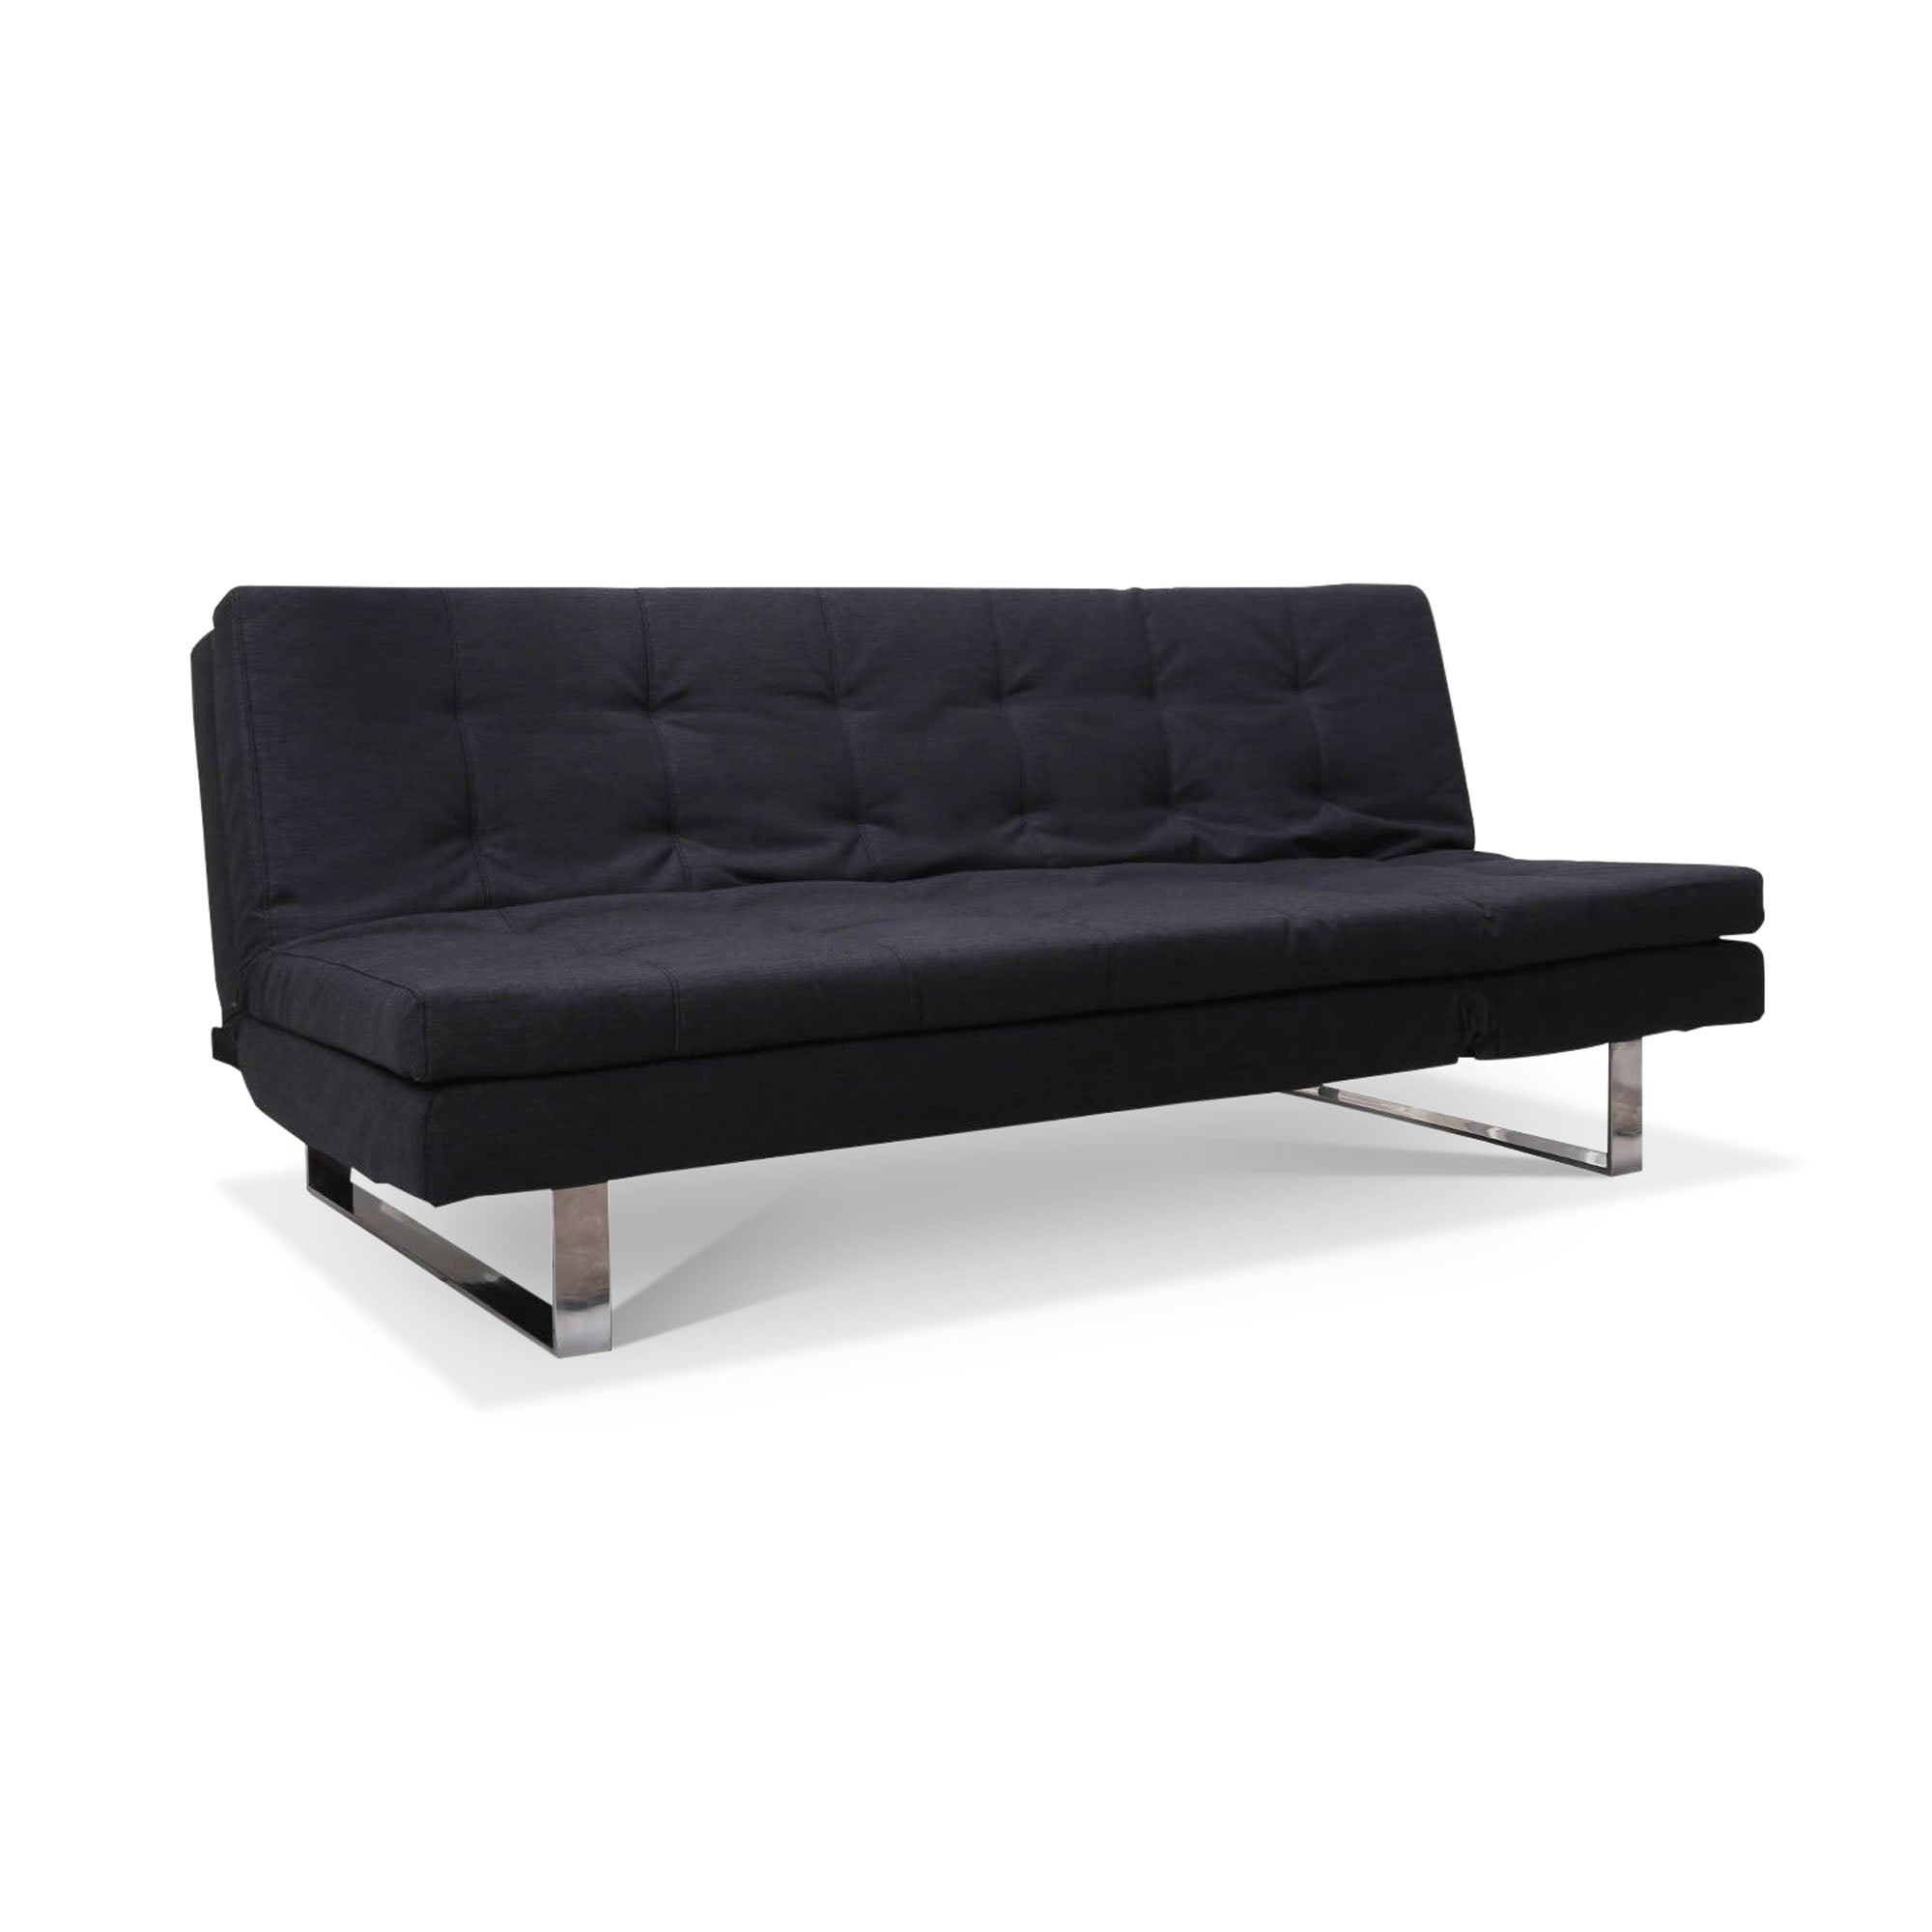 Photo of Nimes black fabric sofa bed grey